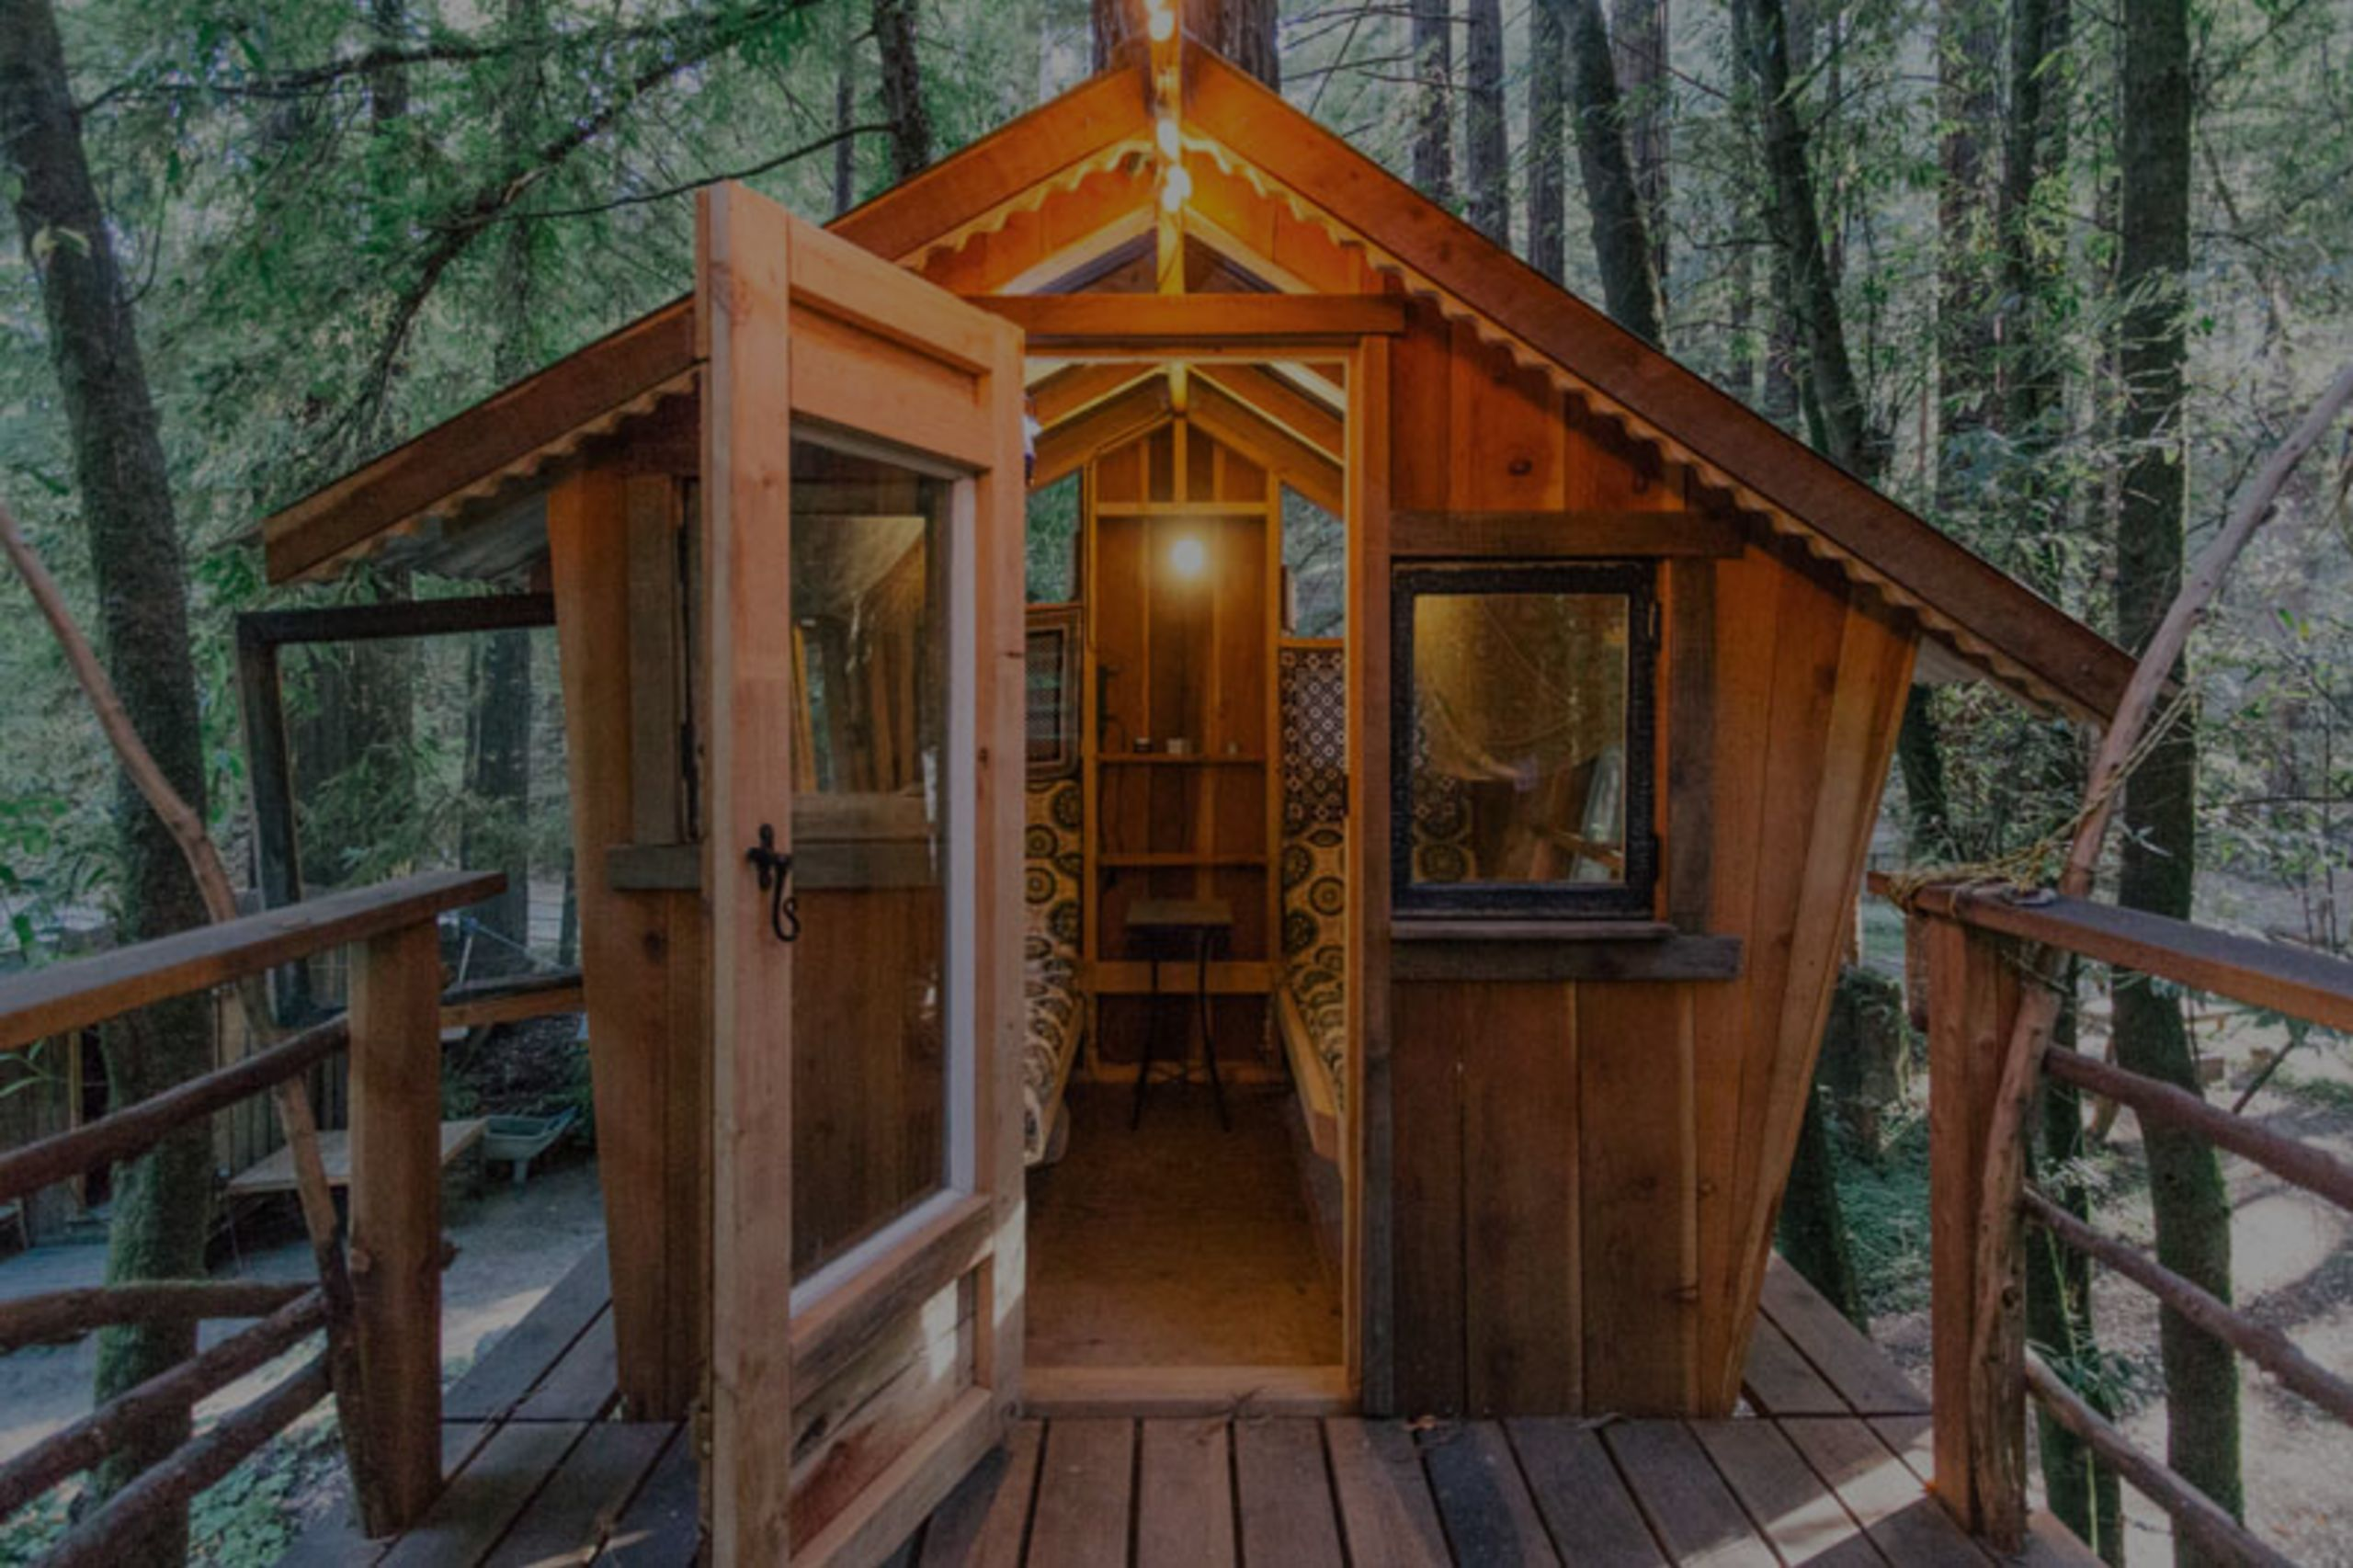 Mountain Bliss: A Creekside Cabin, Rustic Treehouse & Outdoor Canopy Bed